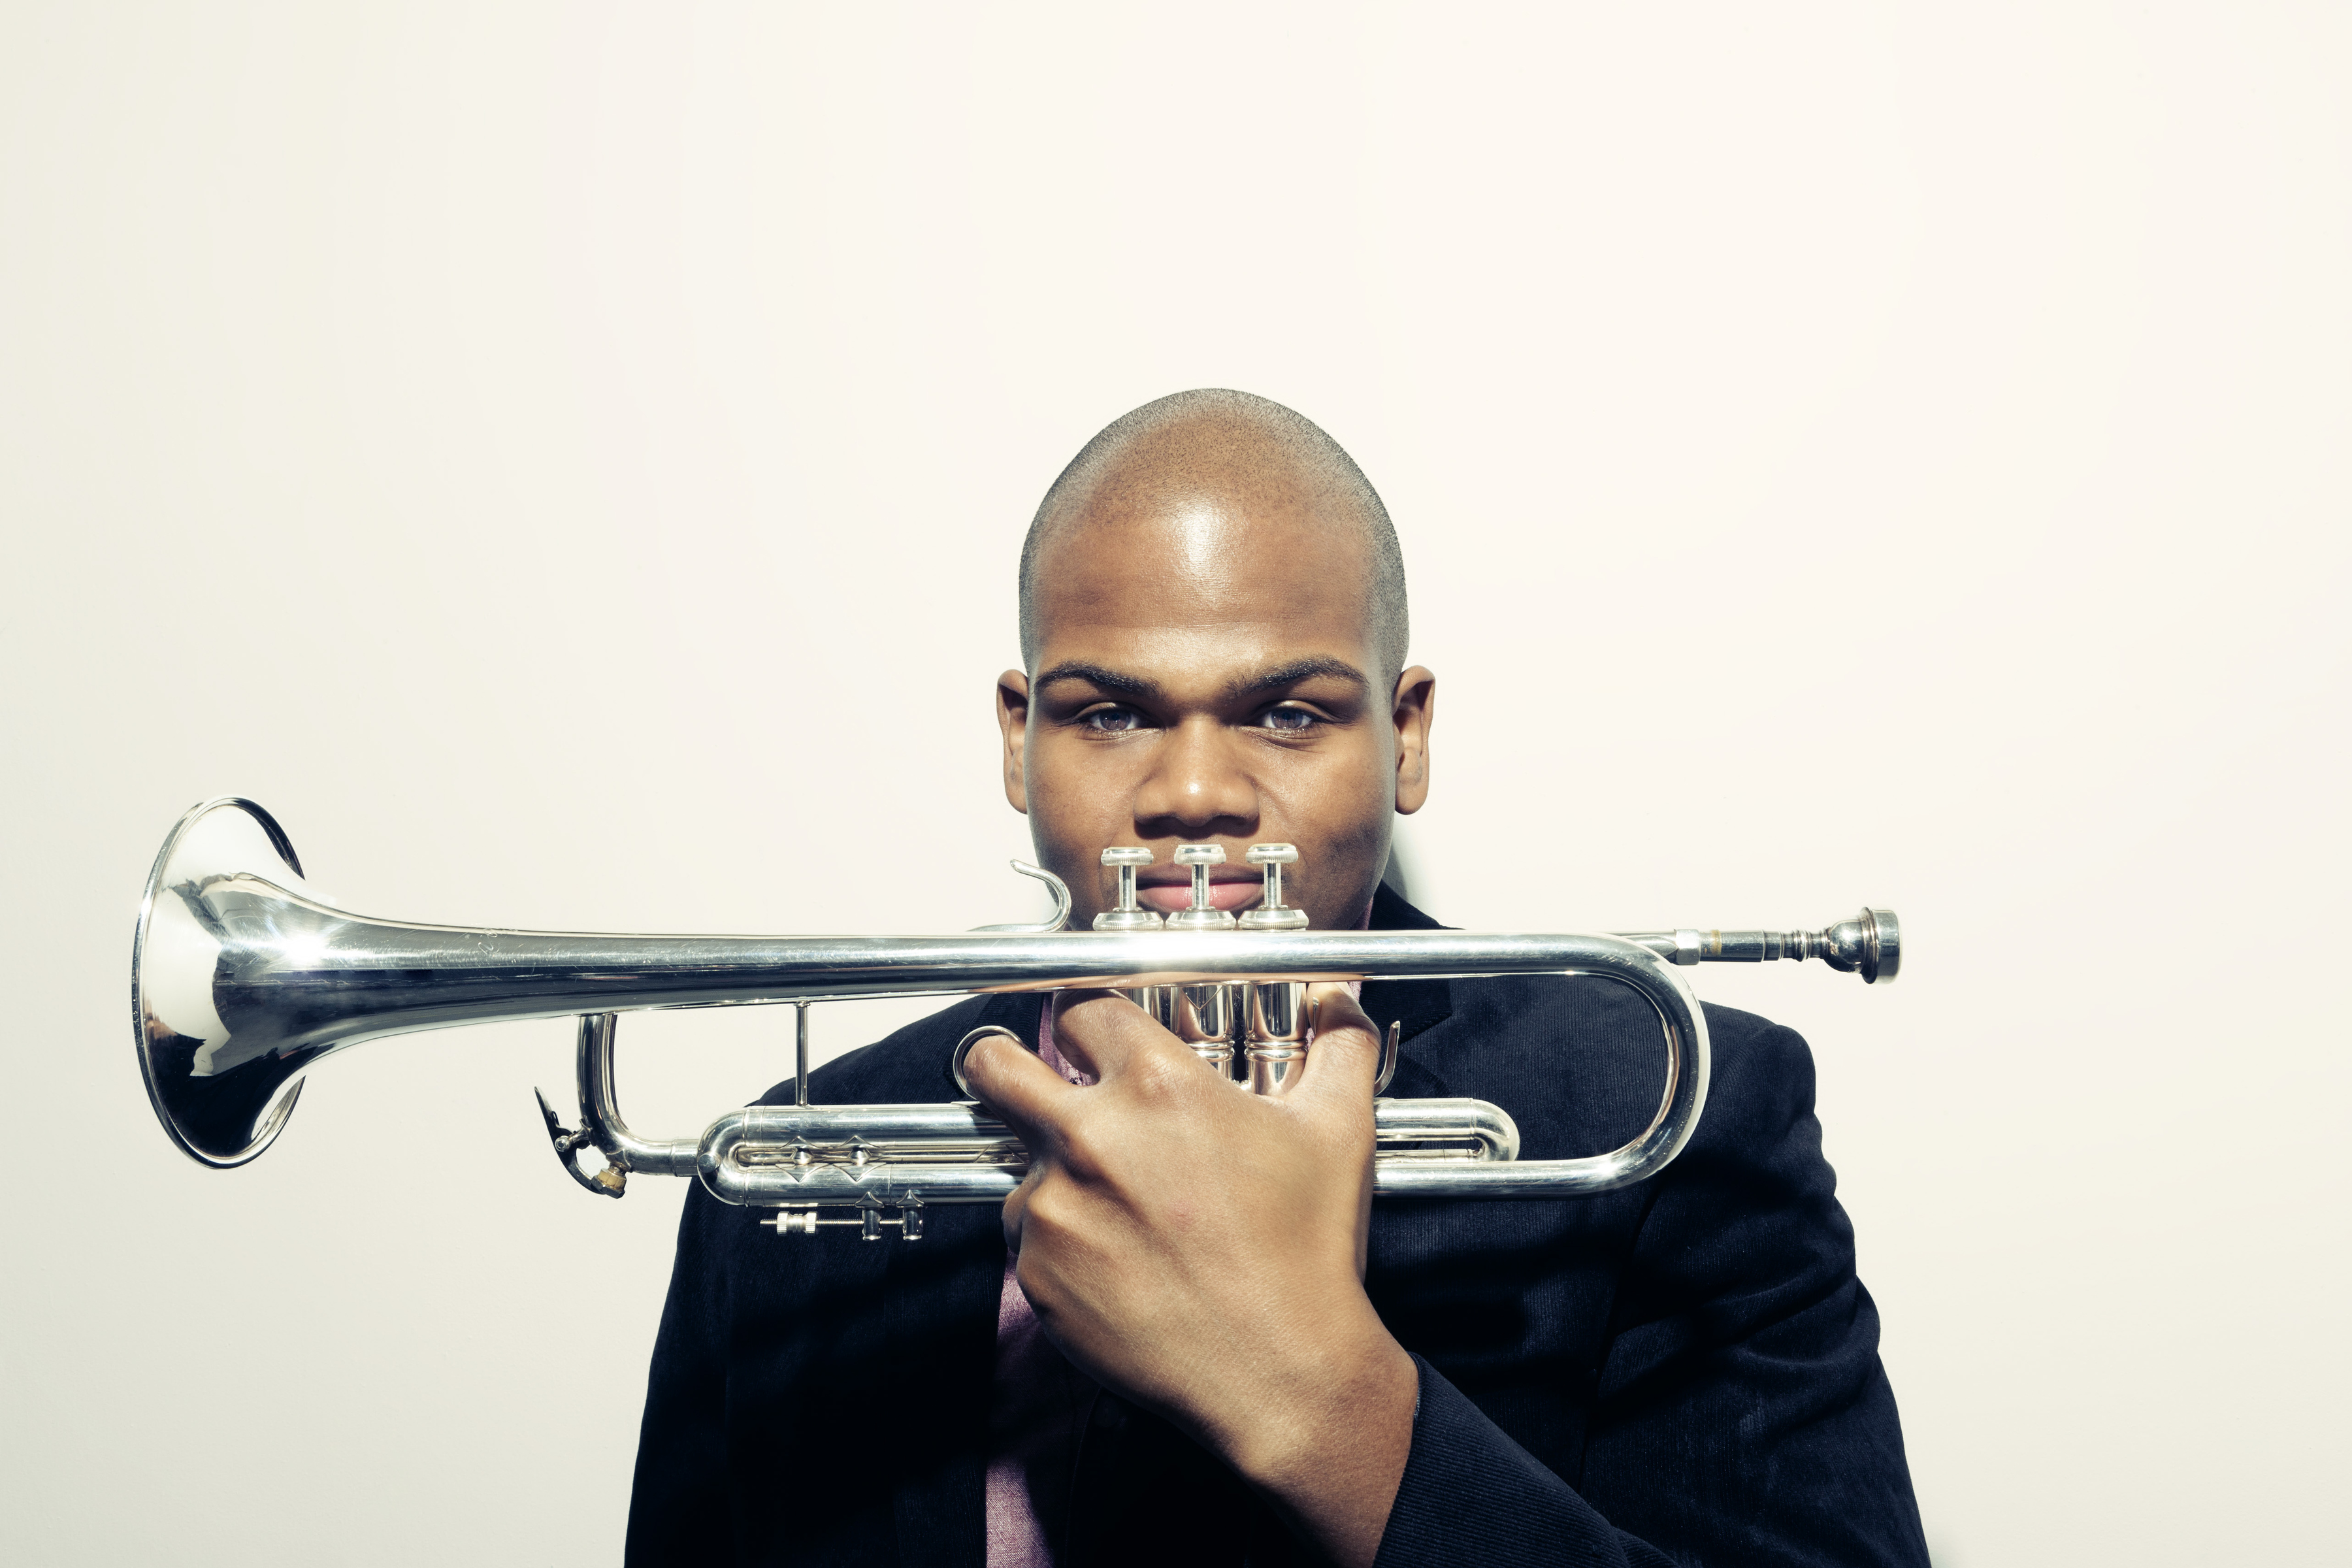 curtis taylor with his trumpet